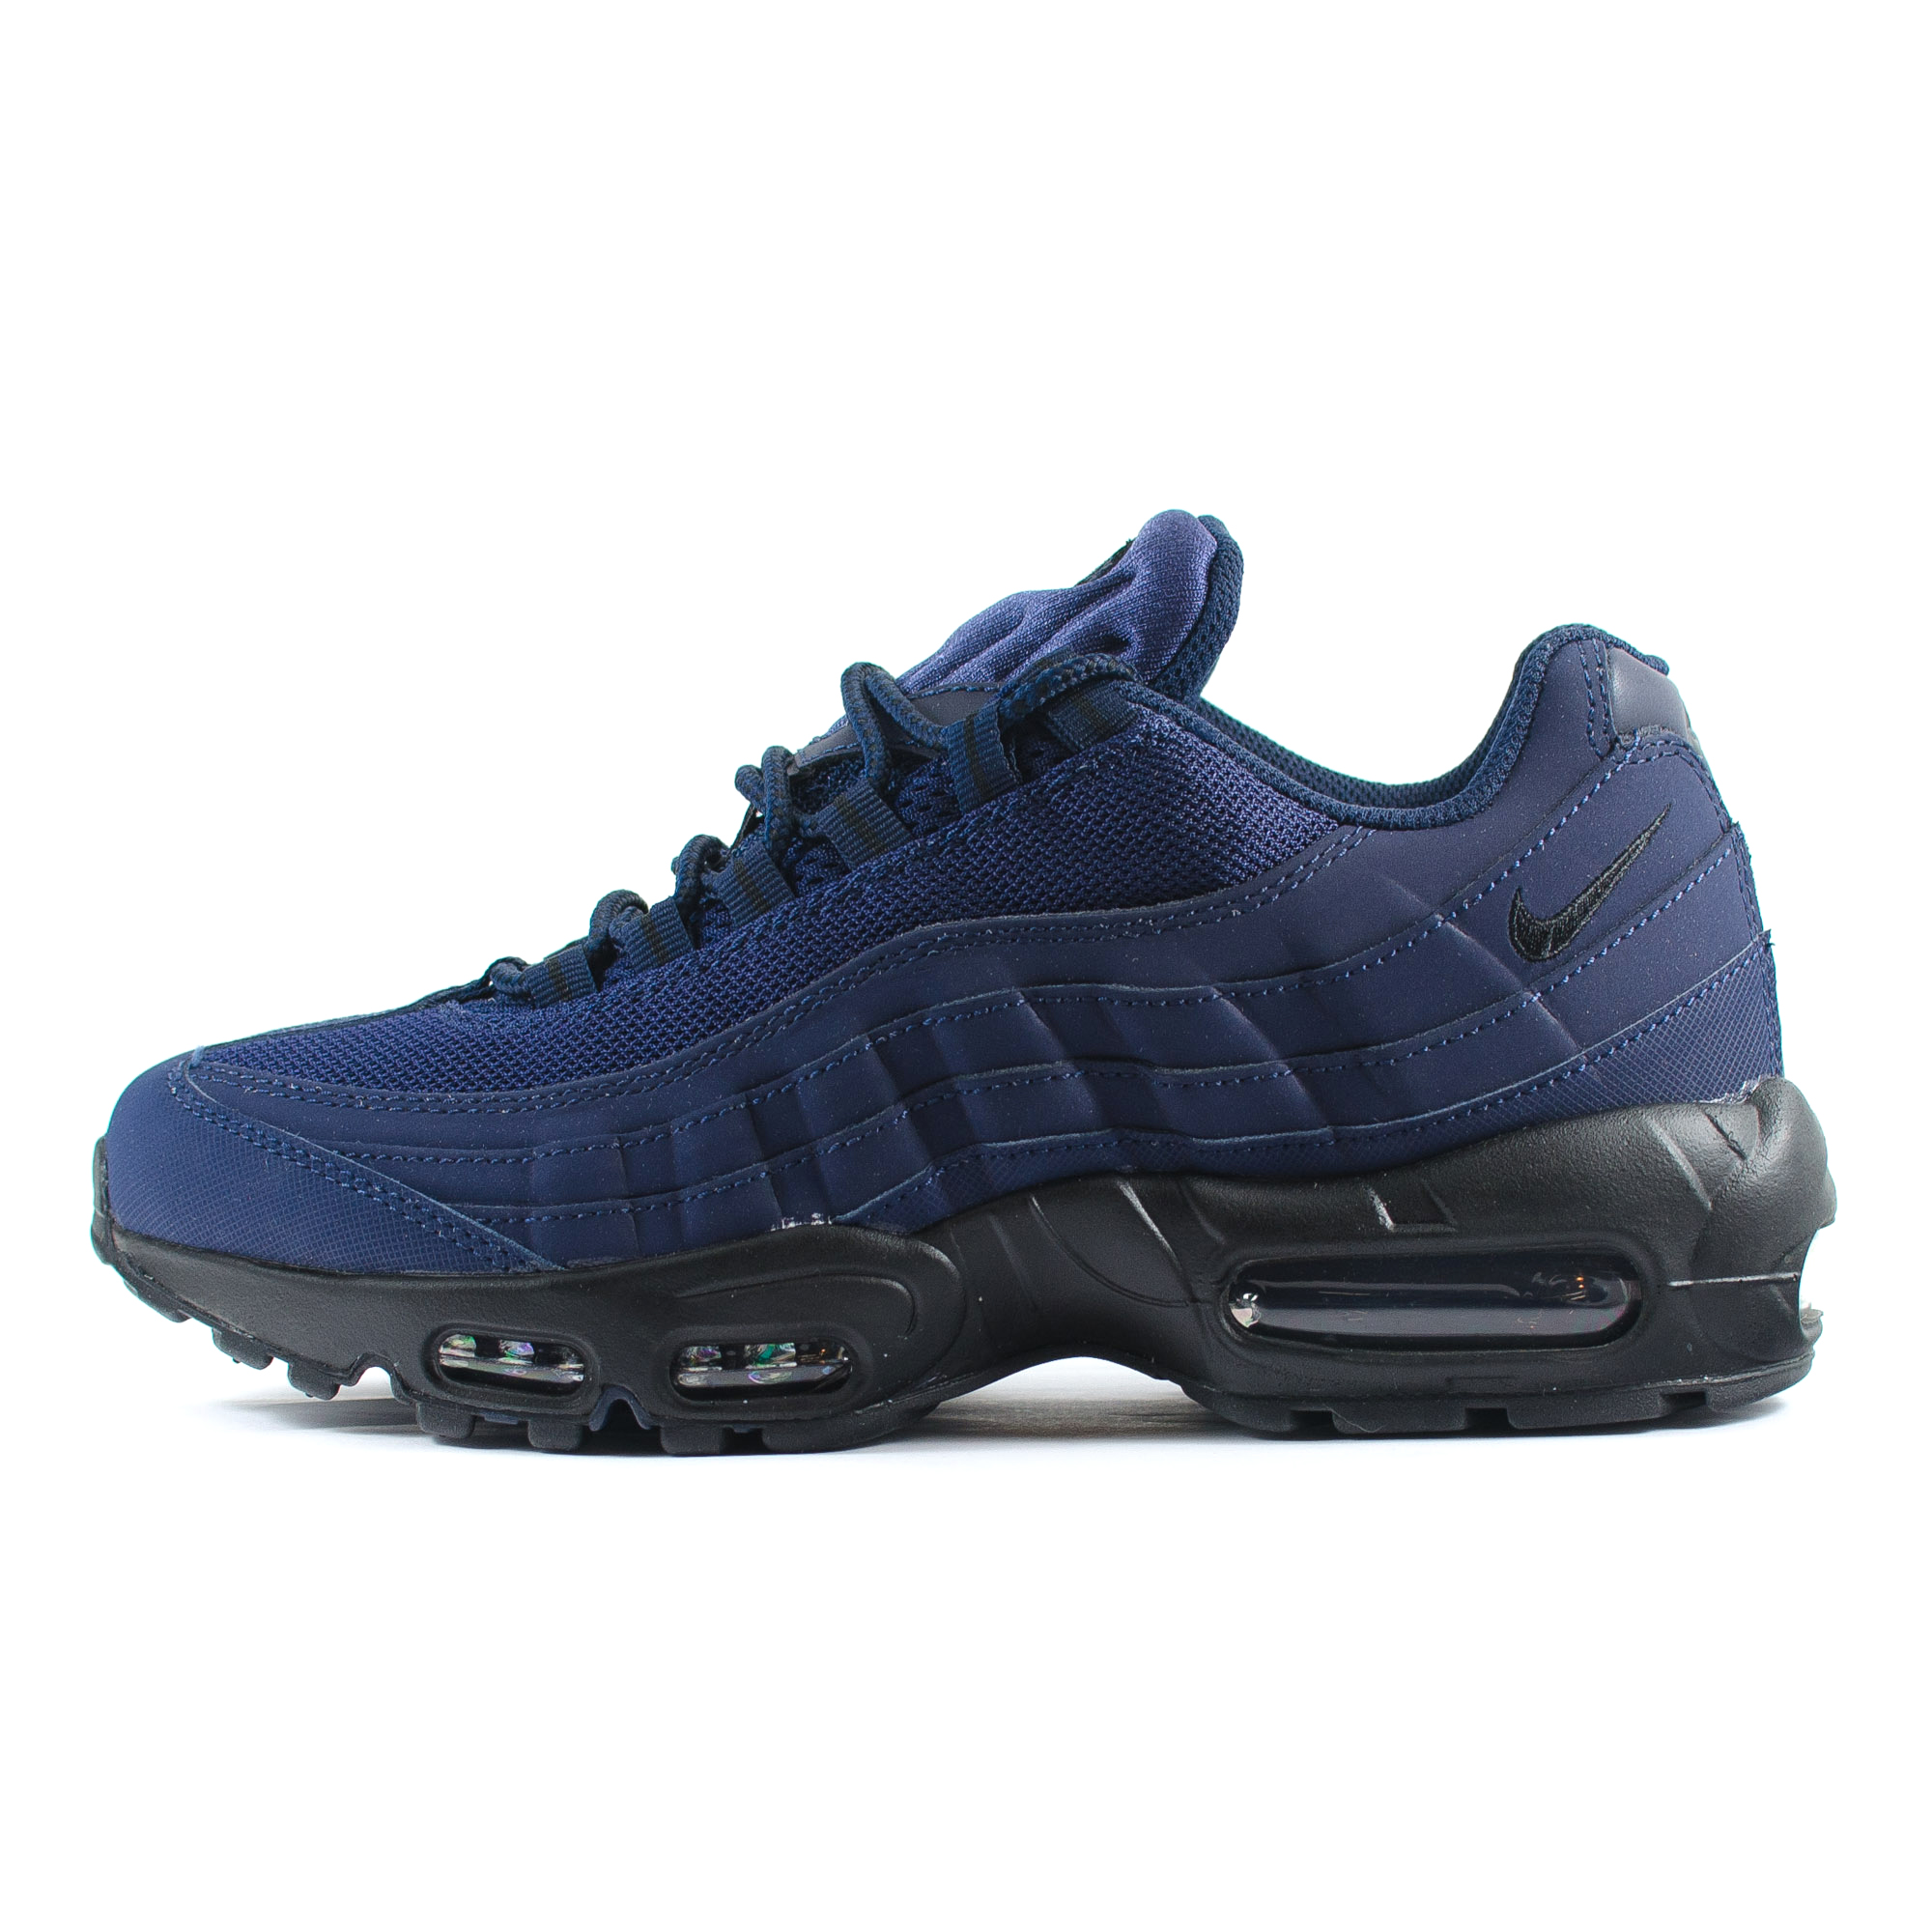 Mens Nike Air Max 95 Navy Blue/Black Classic Running Trainers (609048 407) | eBay